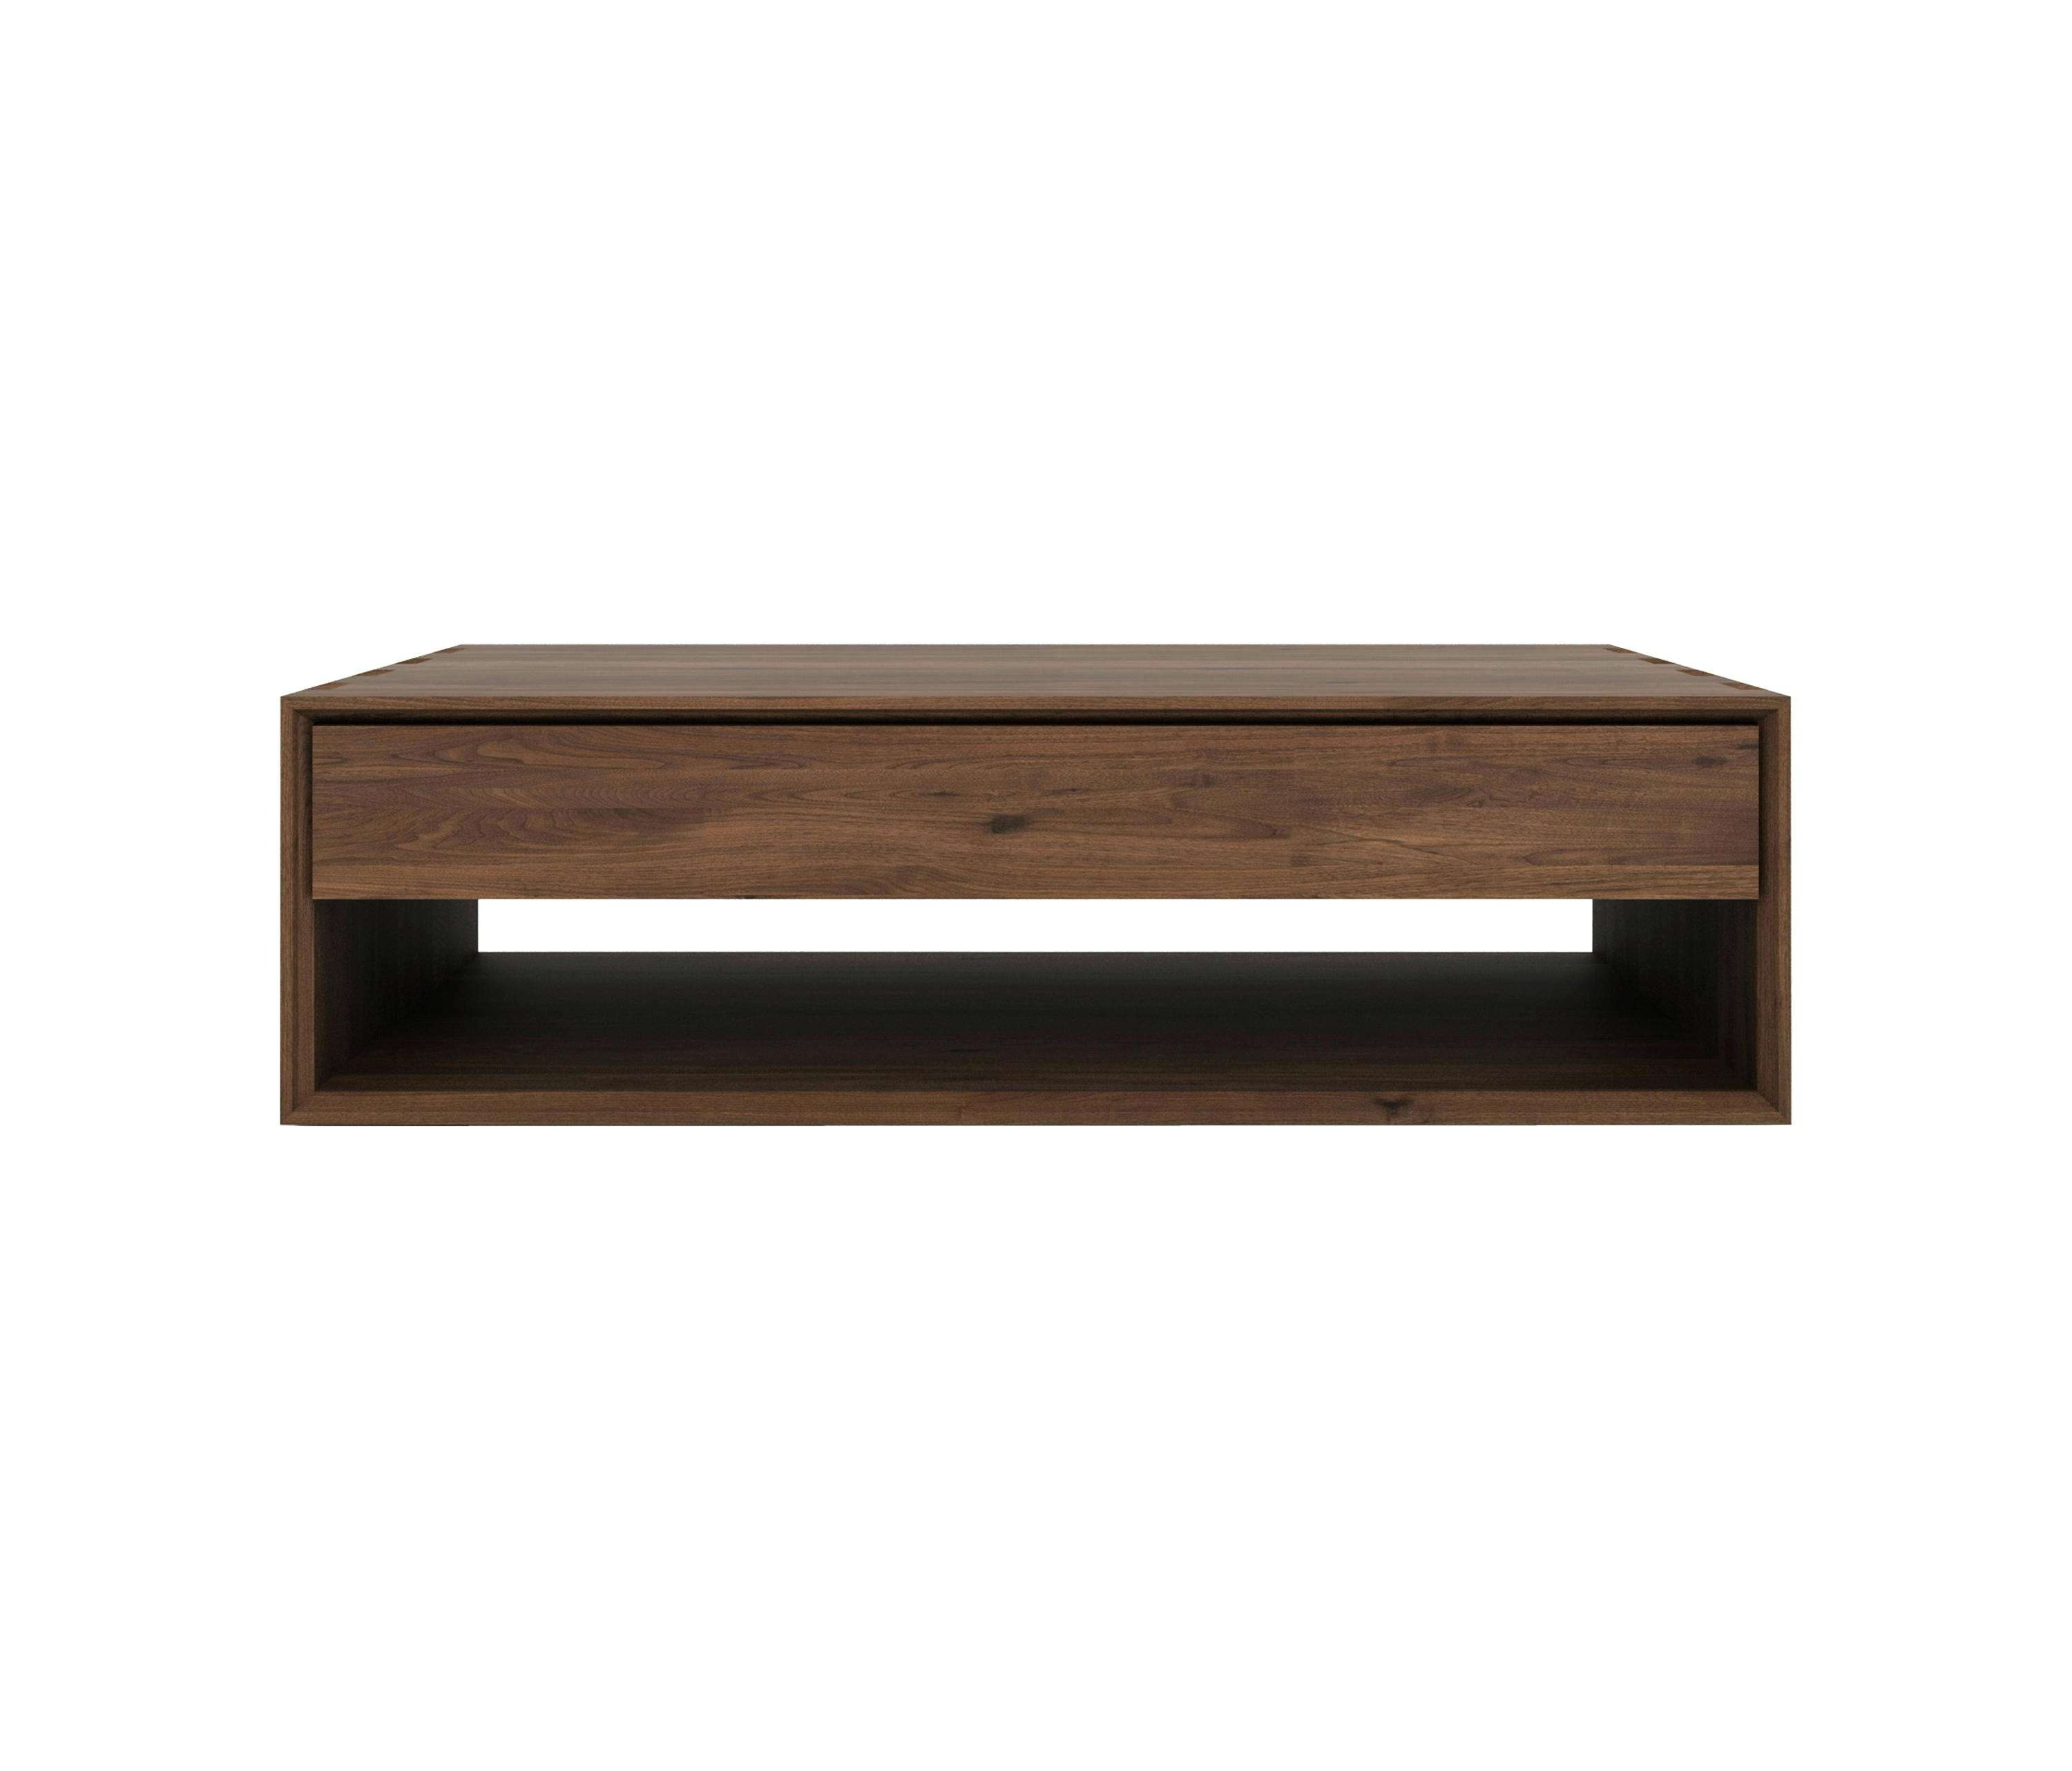 Tv Stand : Panorama Tv Stand Walnut Cupboard Multimedia Stands In Techlink Panorama Walnut Tv Stands (View 14 of 15)